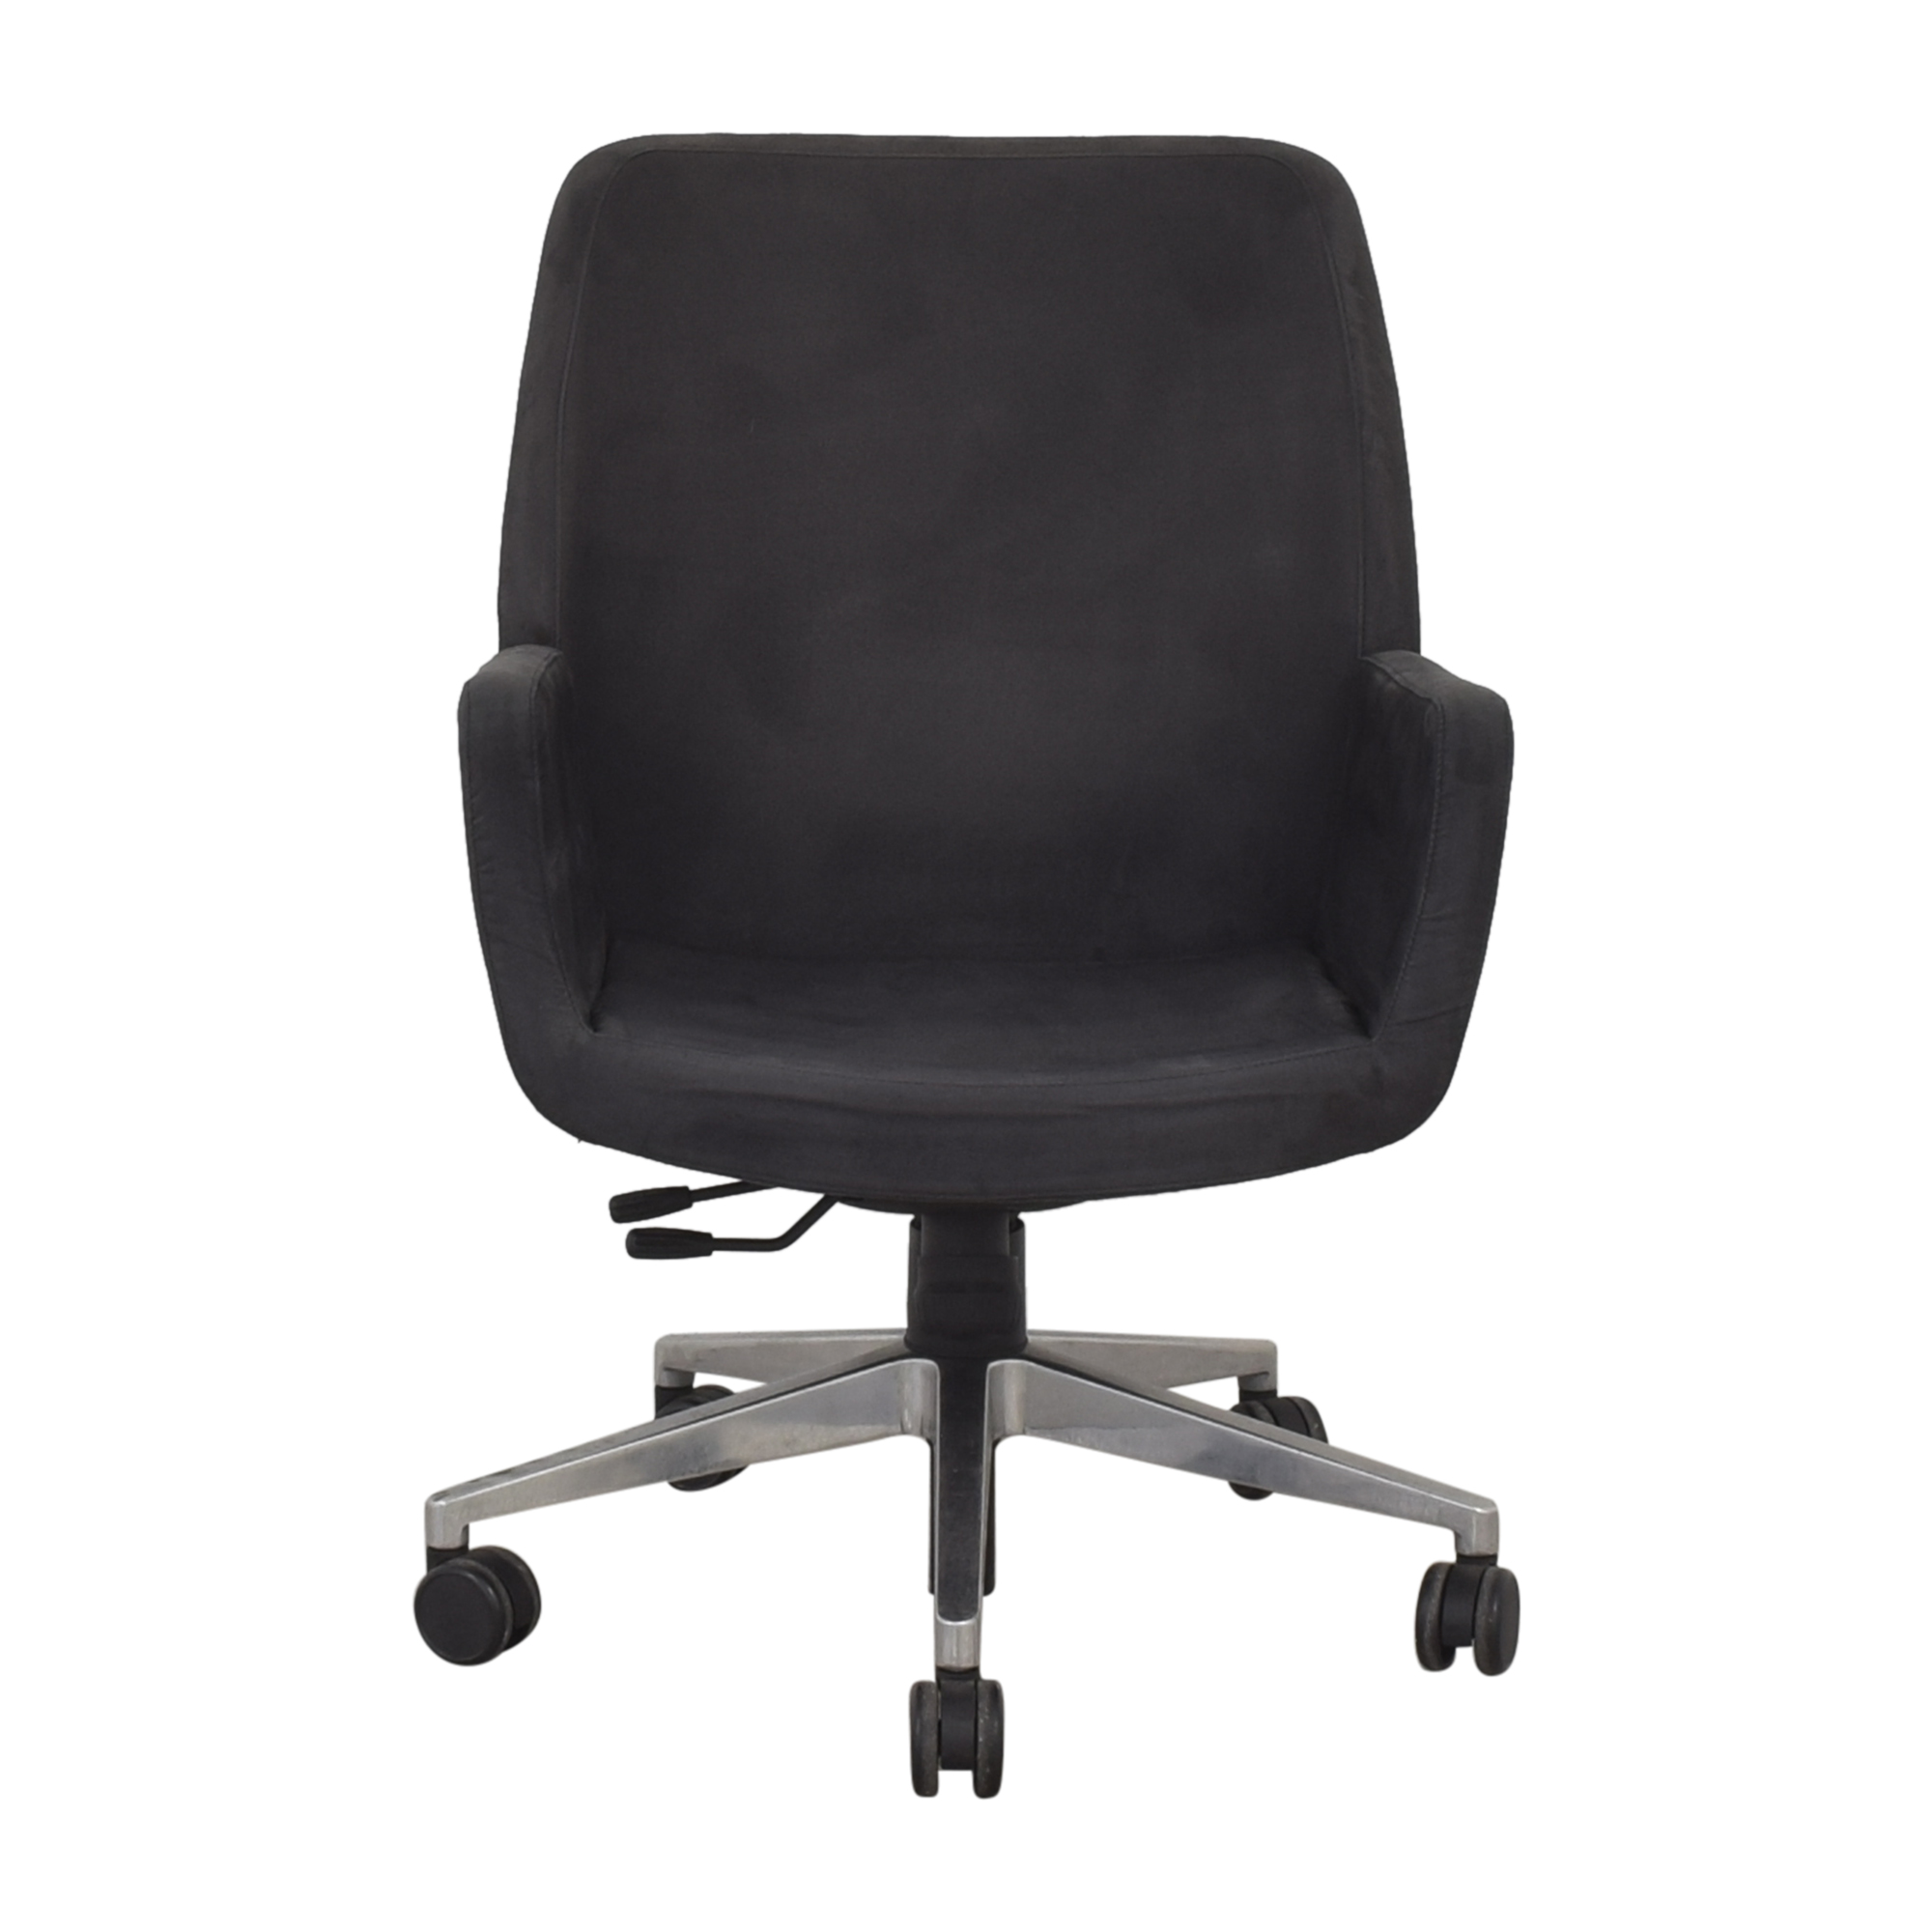 Steelcase Steelcase Coalesse Bindu Guest Chair for sale